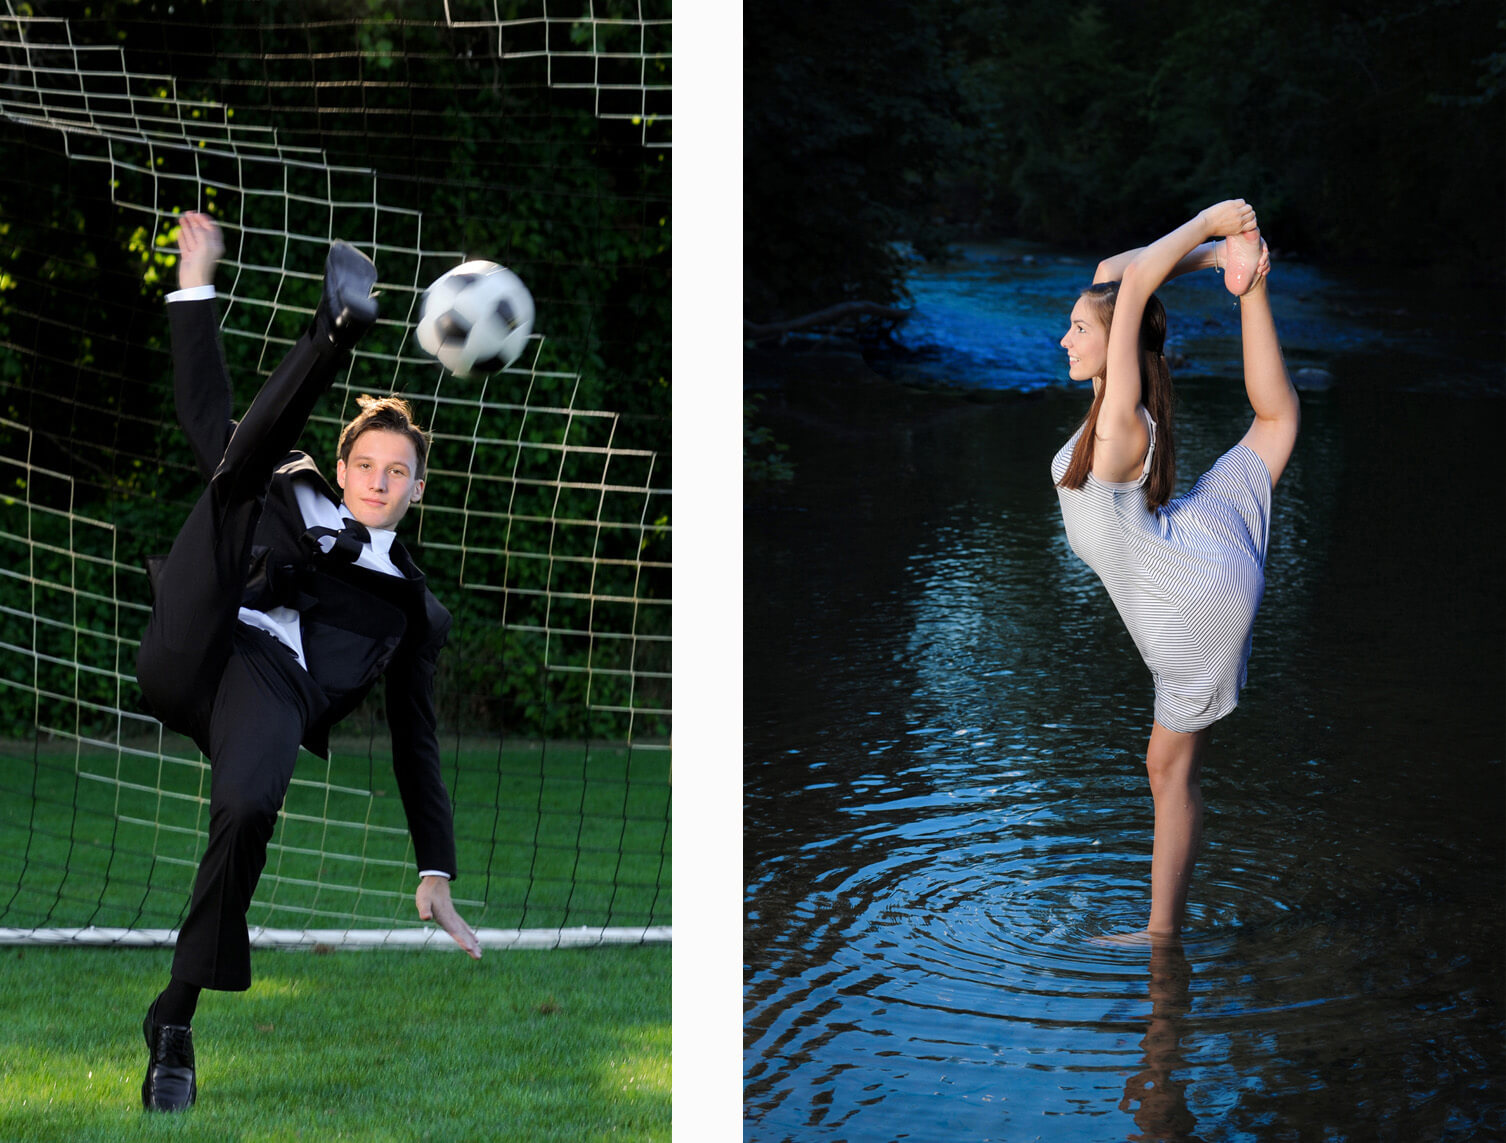 Two athletic metro Detroit, Michigan seniors brought their unique talents to their photo sessions. One is doing his best James Bond goal tending for a unique soccer senior photo and the other is doing a complicated ballet move in a river at dusk!